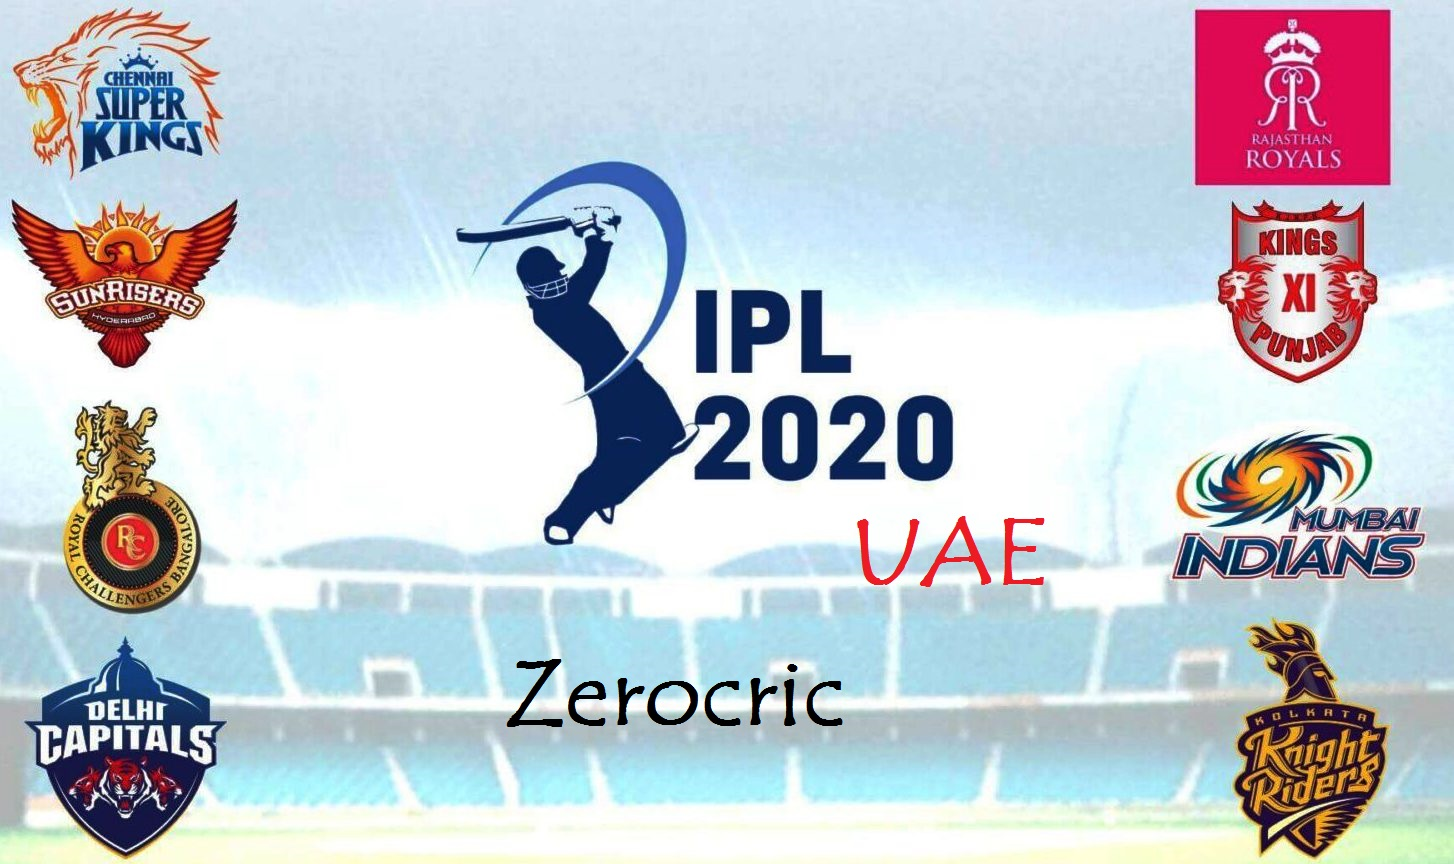 IPL 2020 will starts from September in UAE